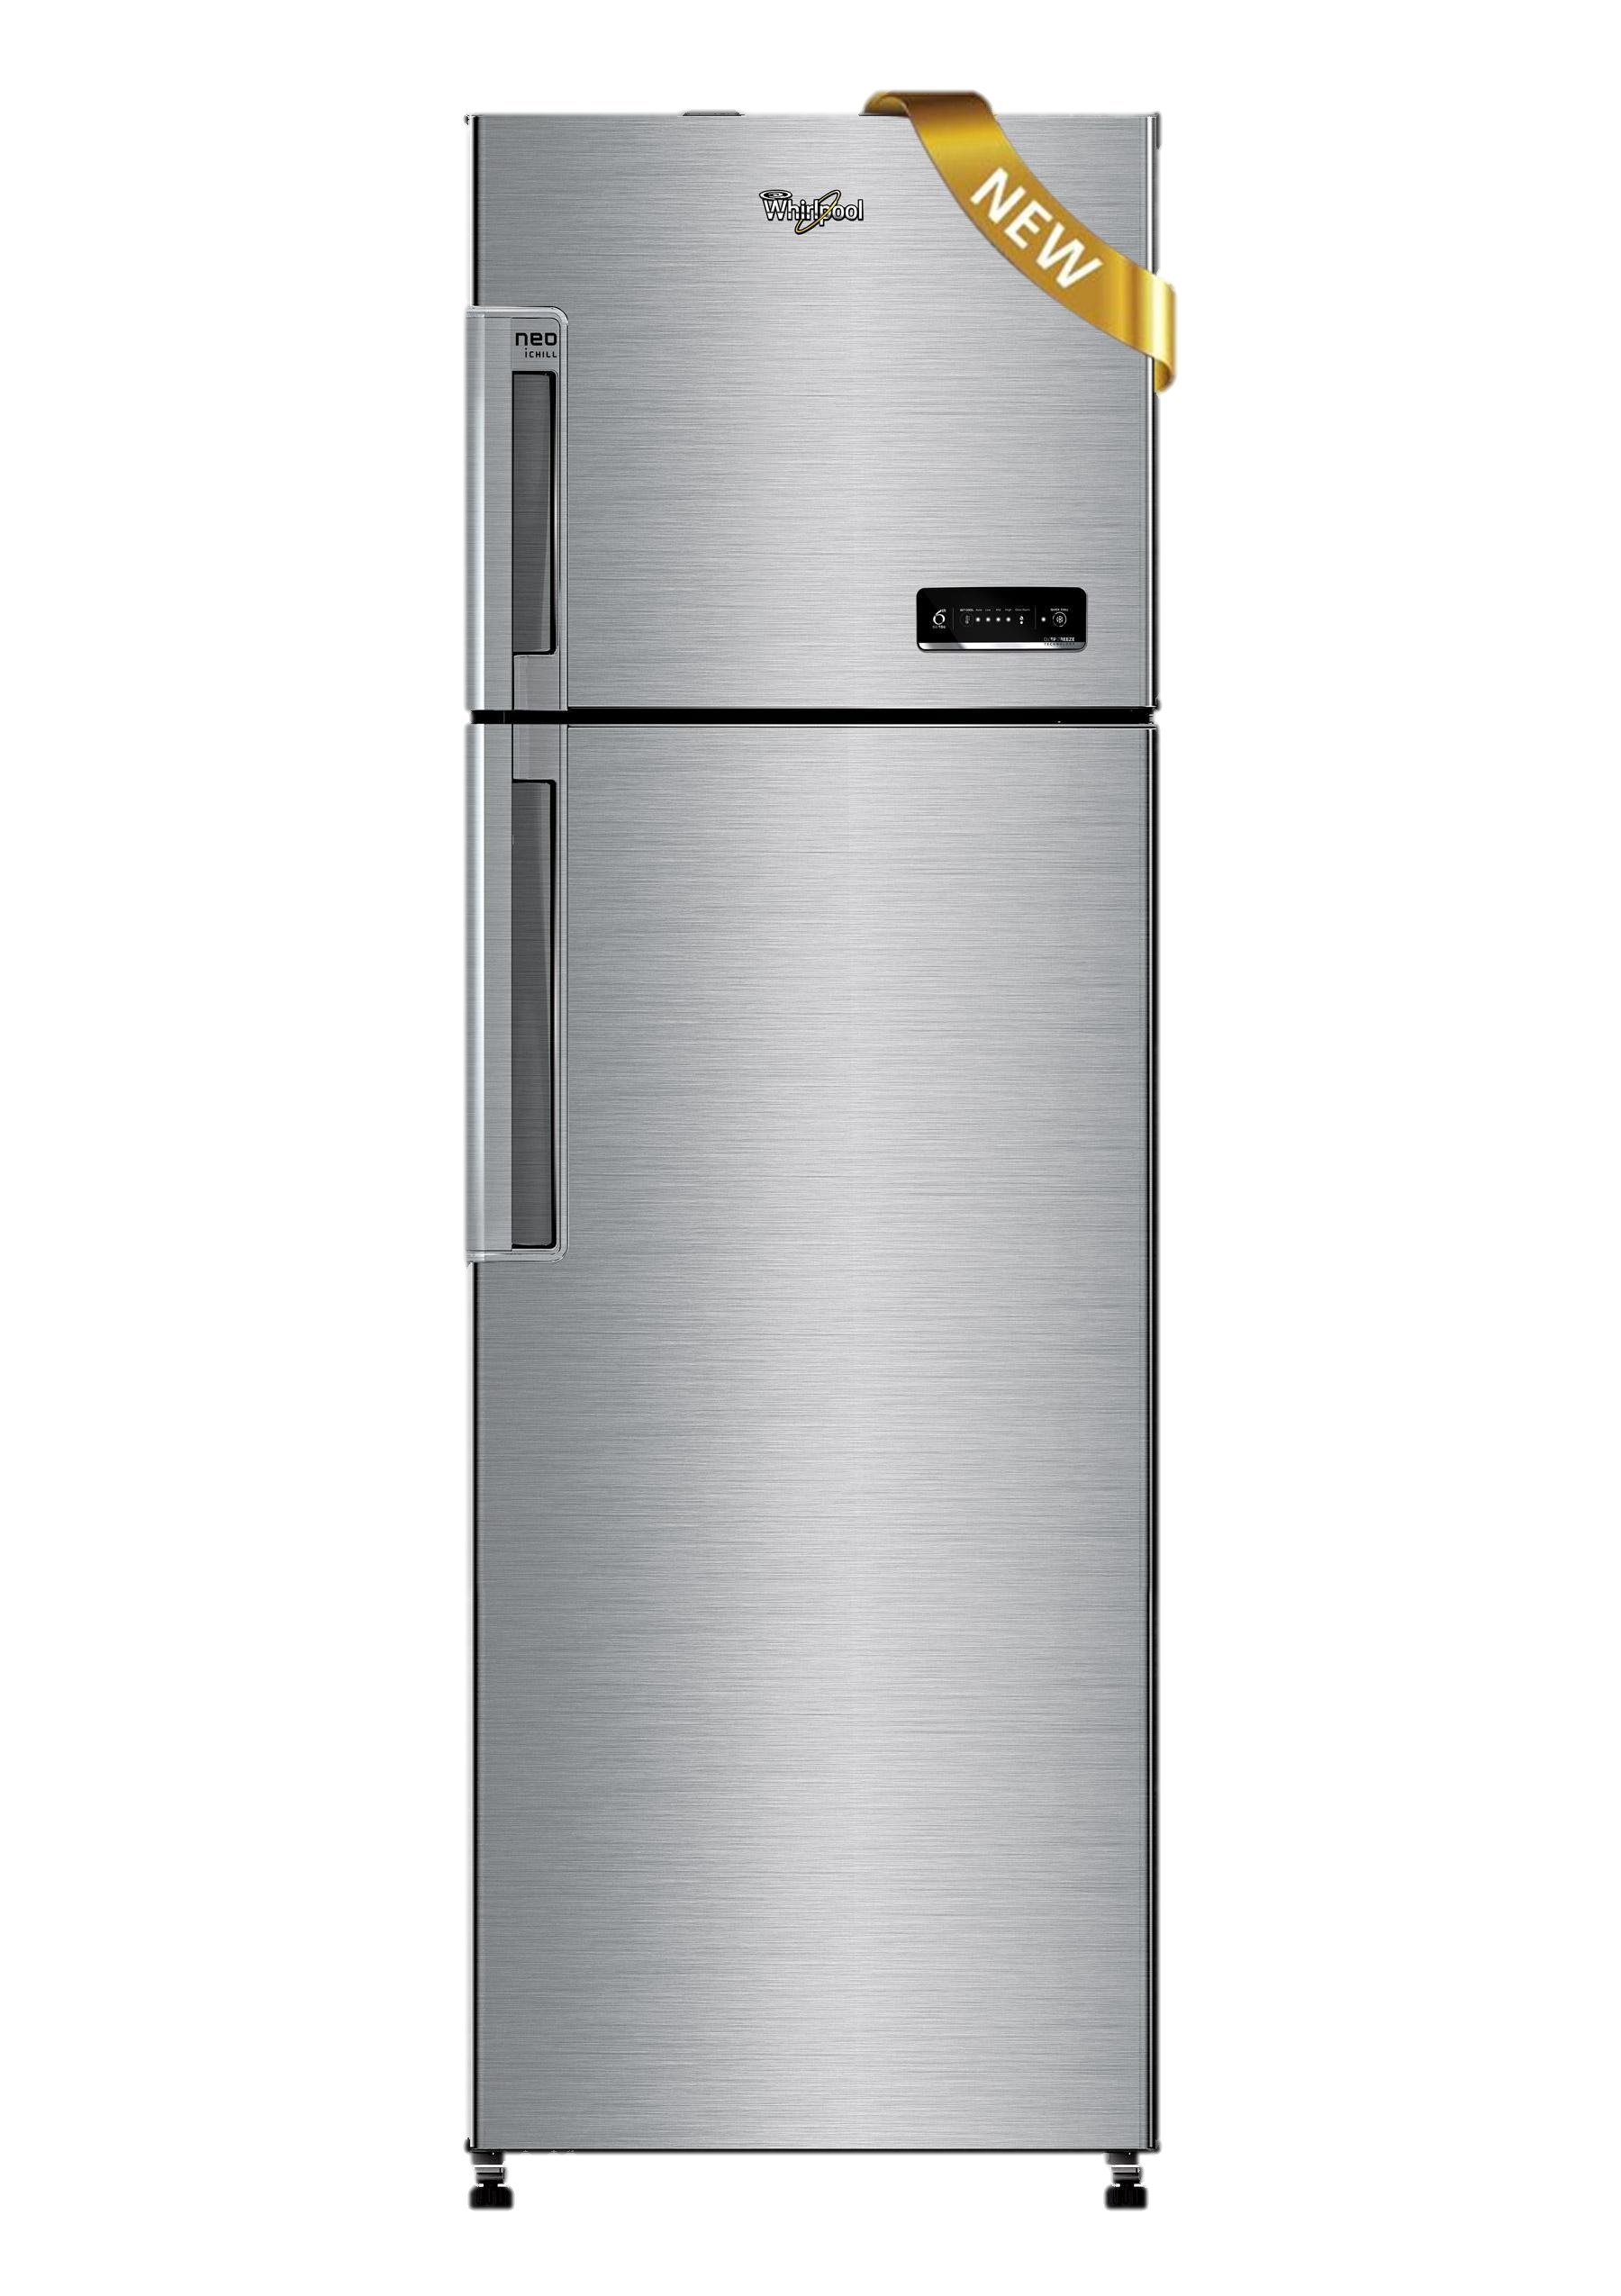 Refrigerator This Whirlpool Double Door Refrigerator Comes With 340 Litre Of Capacity And 1 Year On Product Double Door Refrigerator Refrigerator Water Bottels